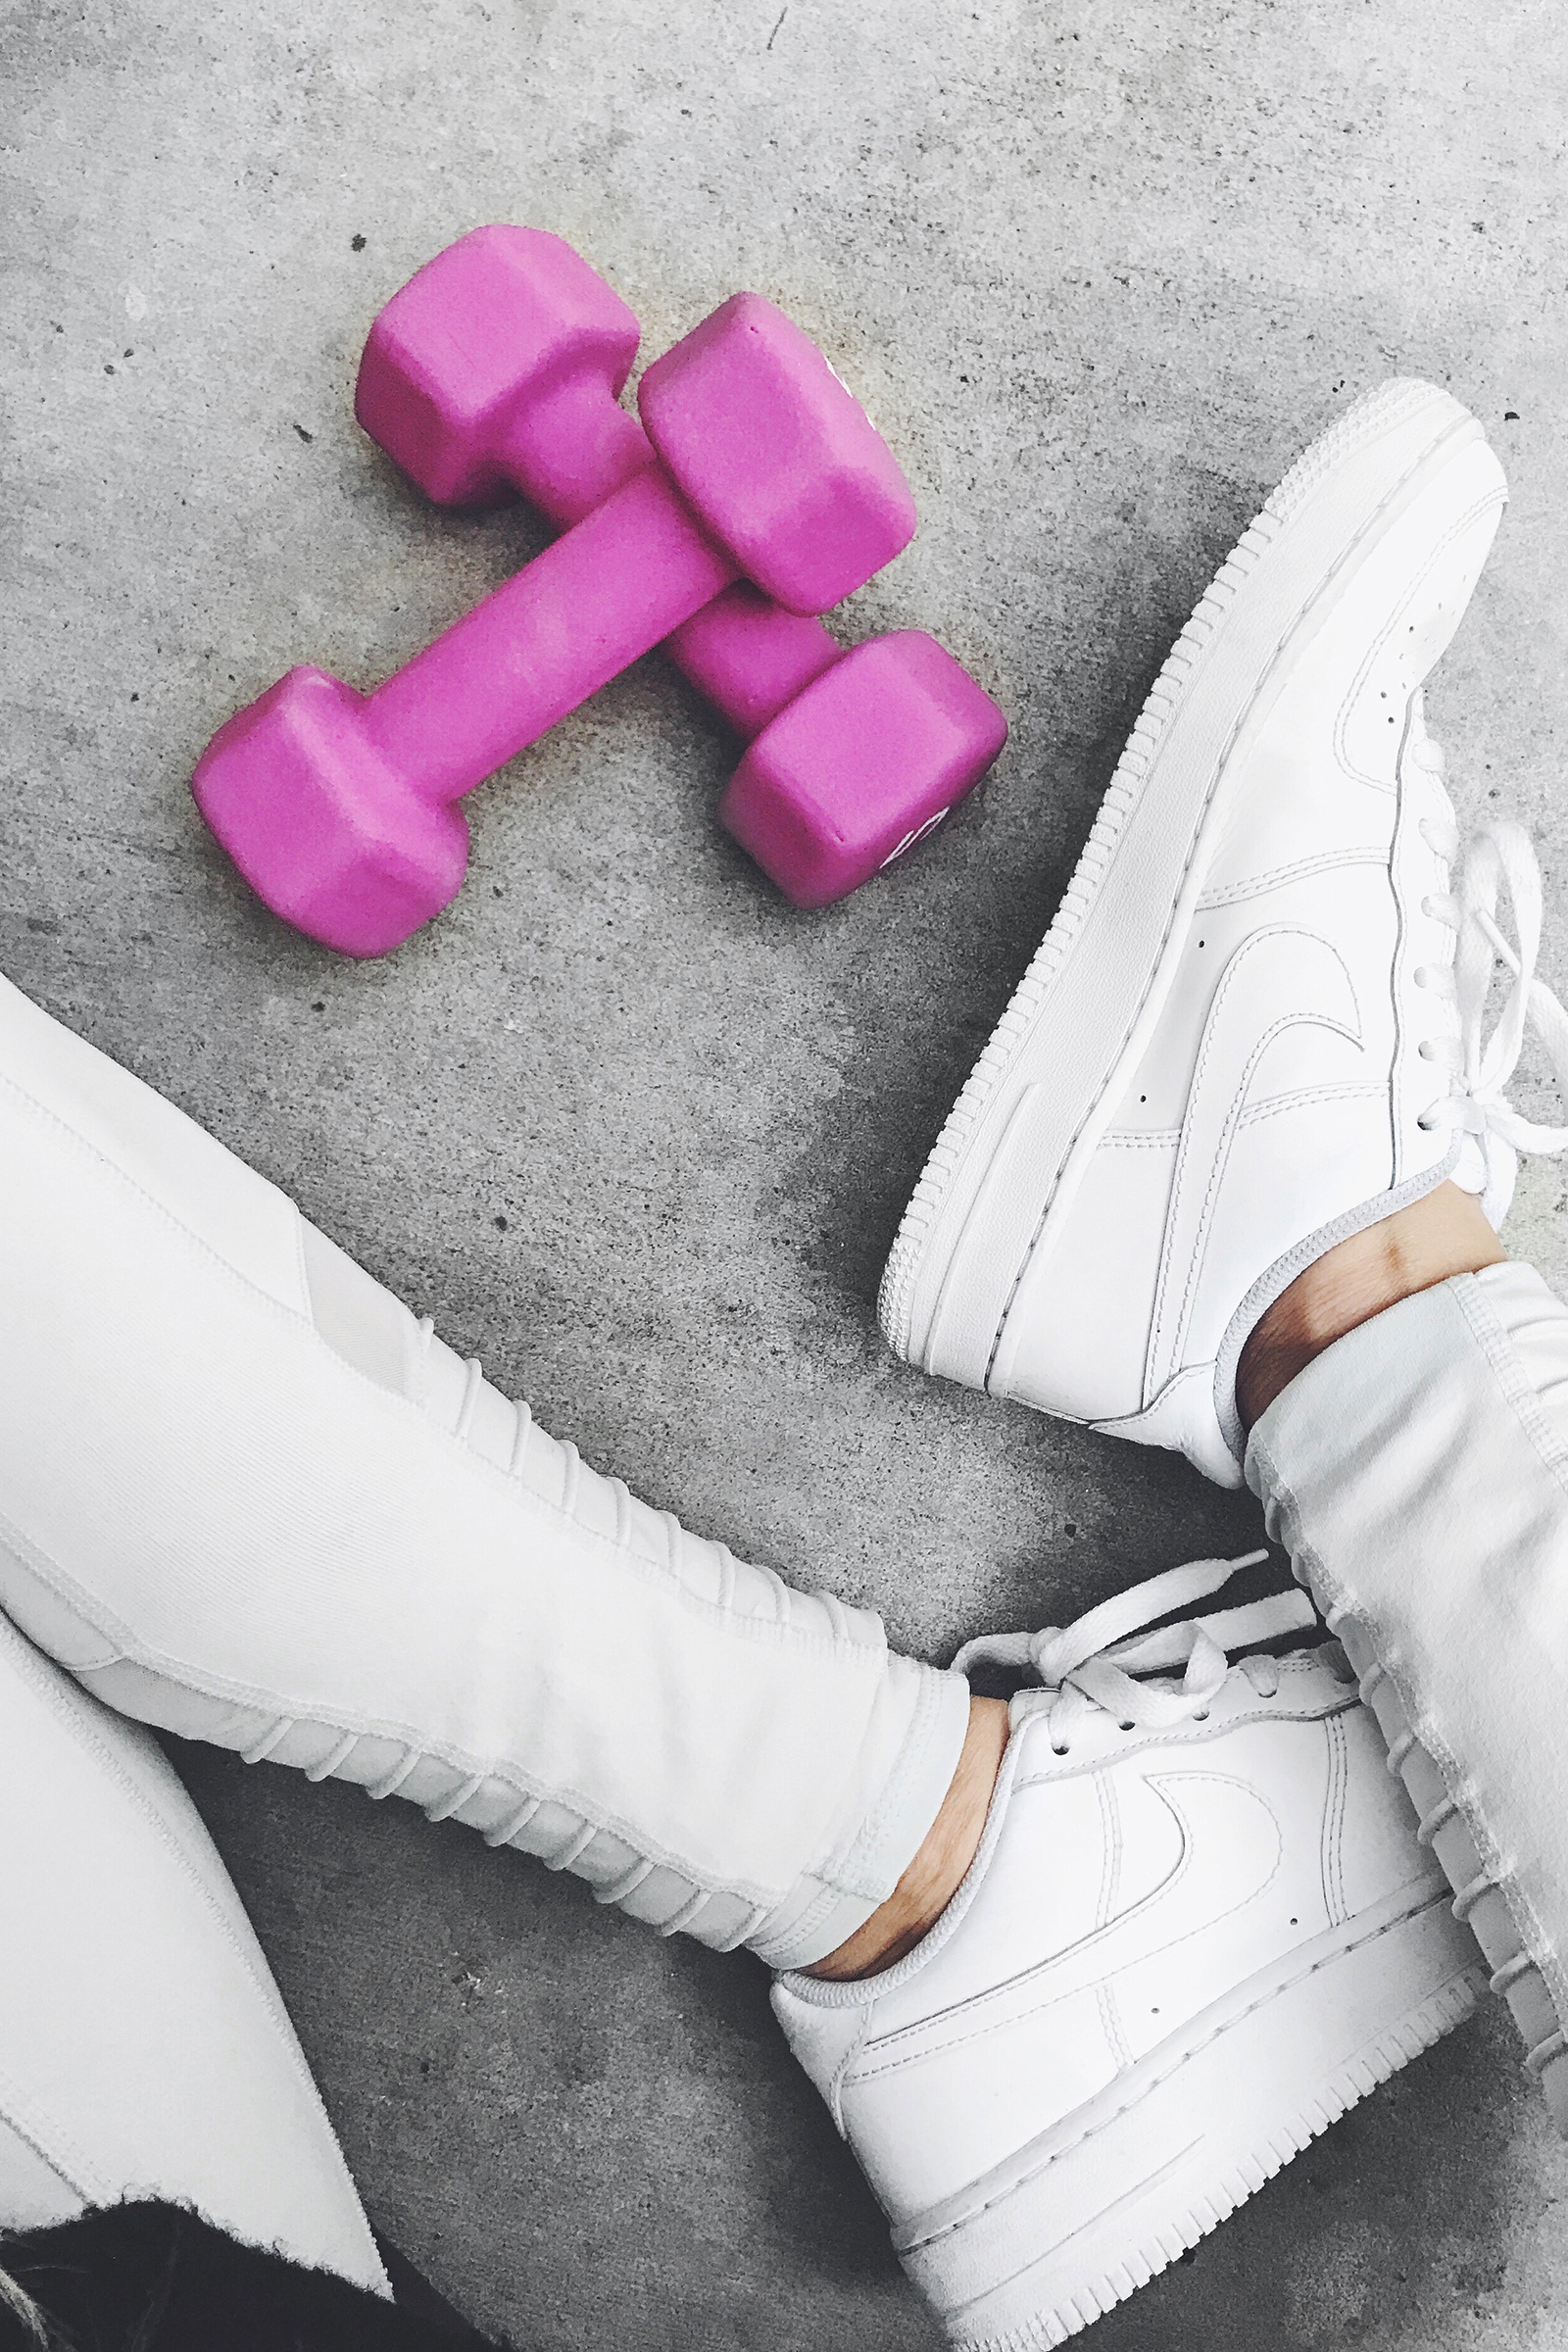 Workout / Get Fit / Pink Weights / Cute Workout Equipment / White Nike Air Force Ones  / Instagram Ideas / Kelly Fiance Creative